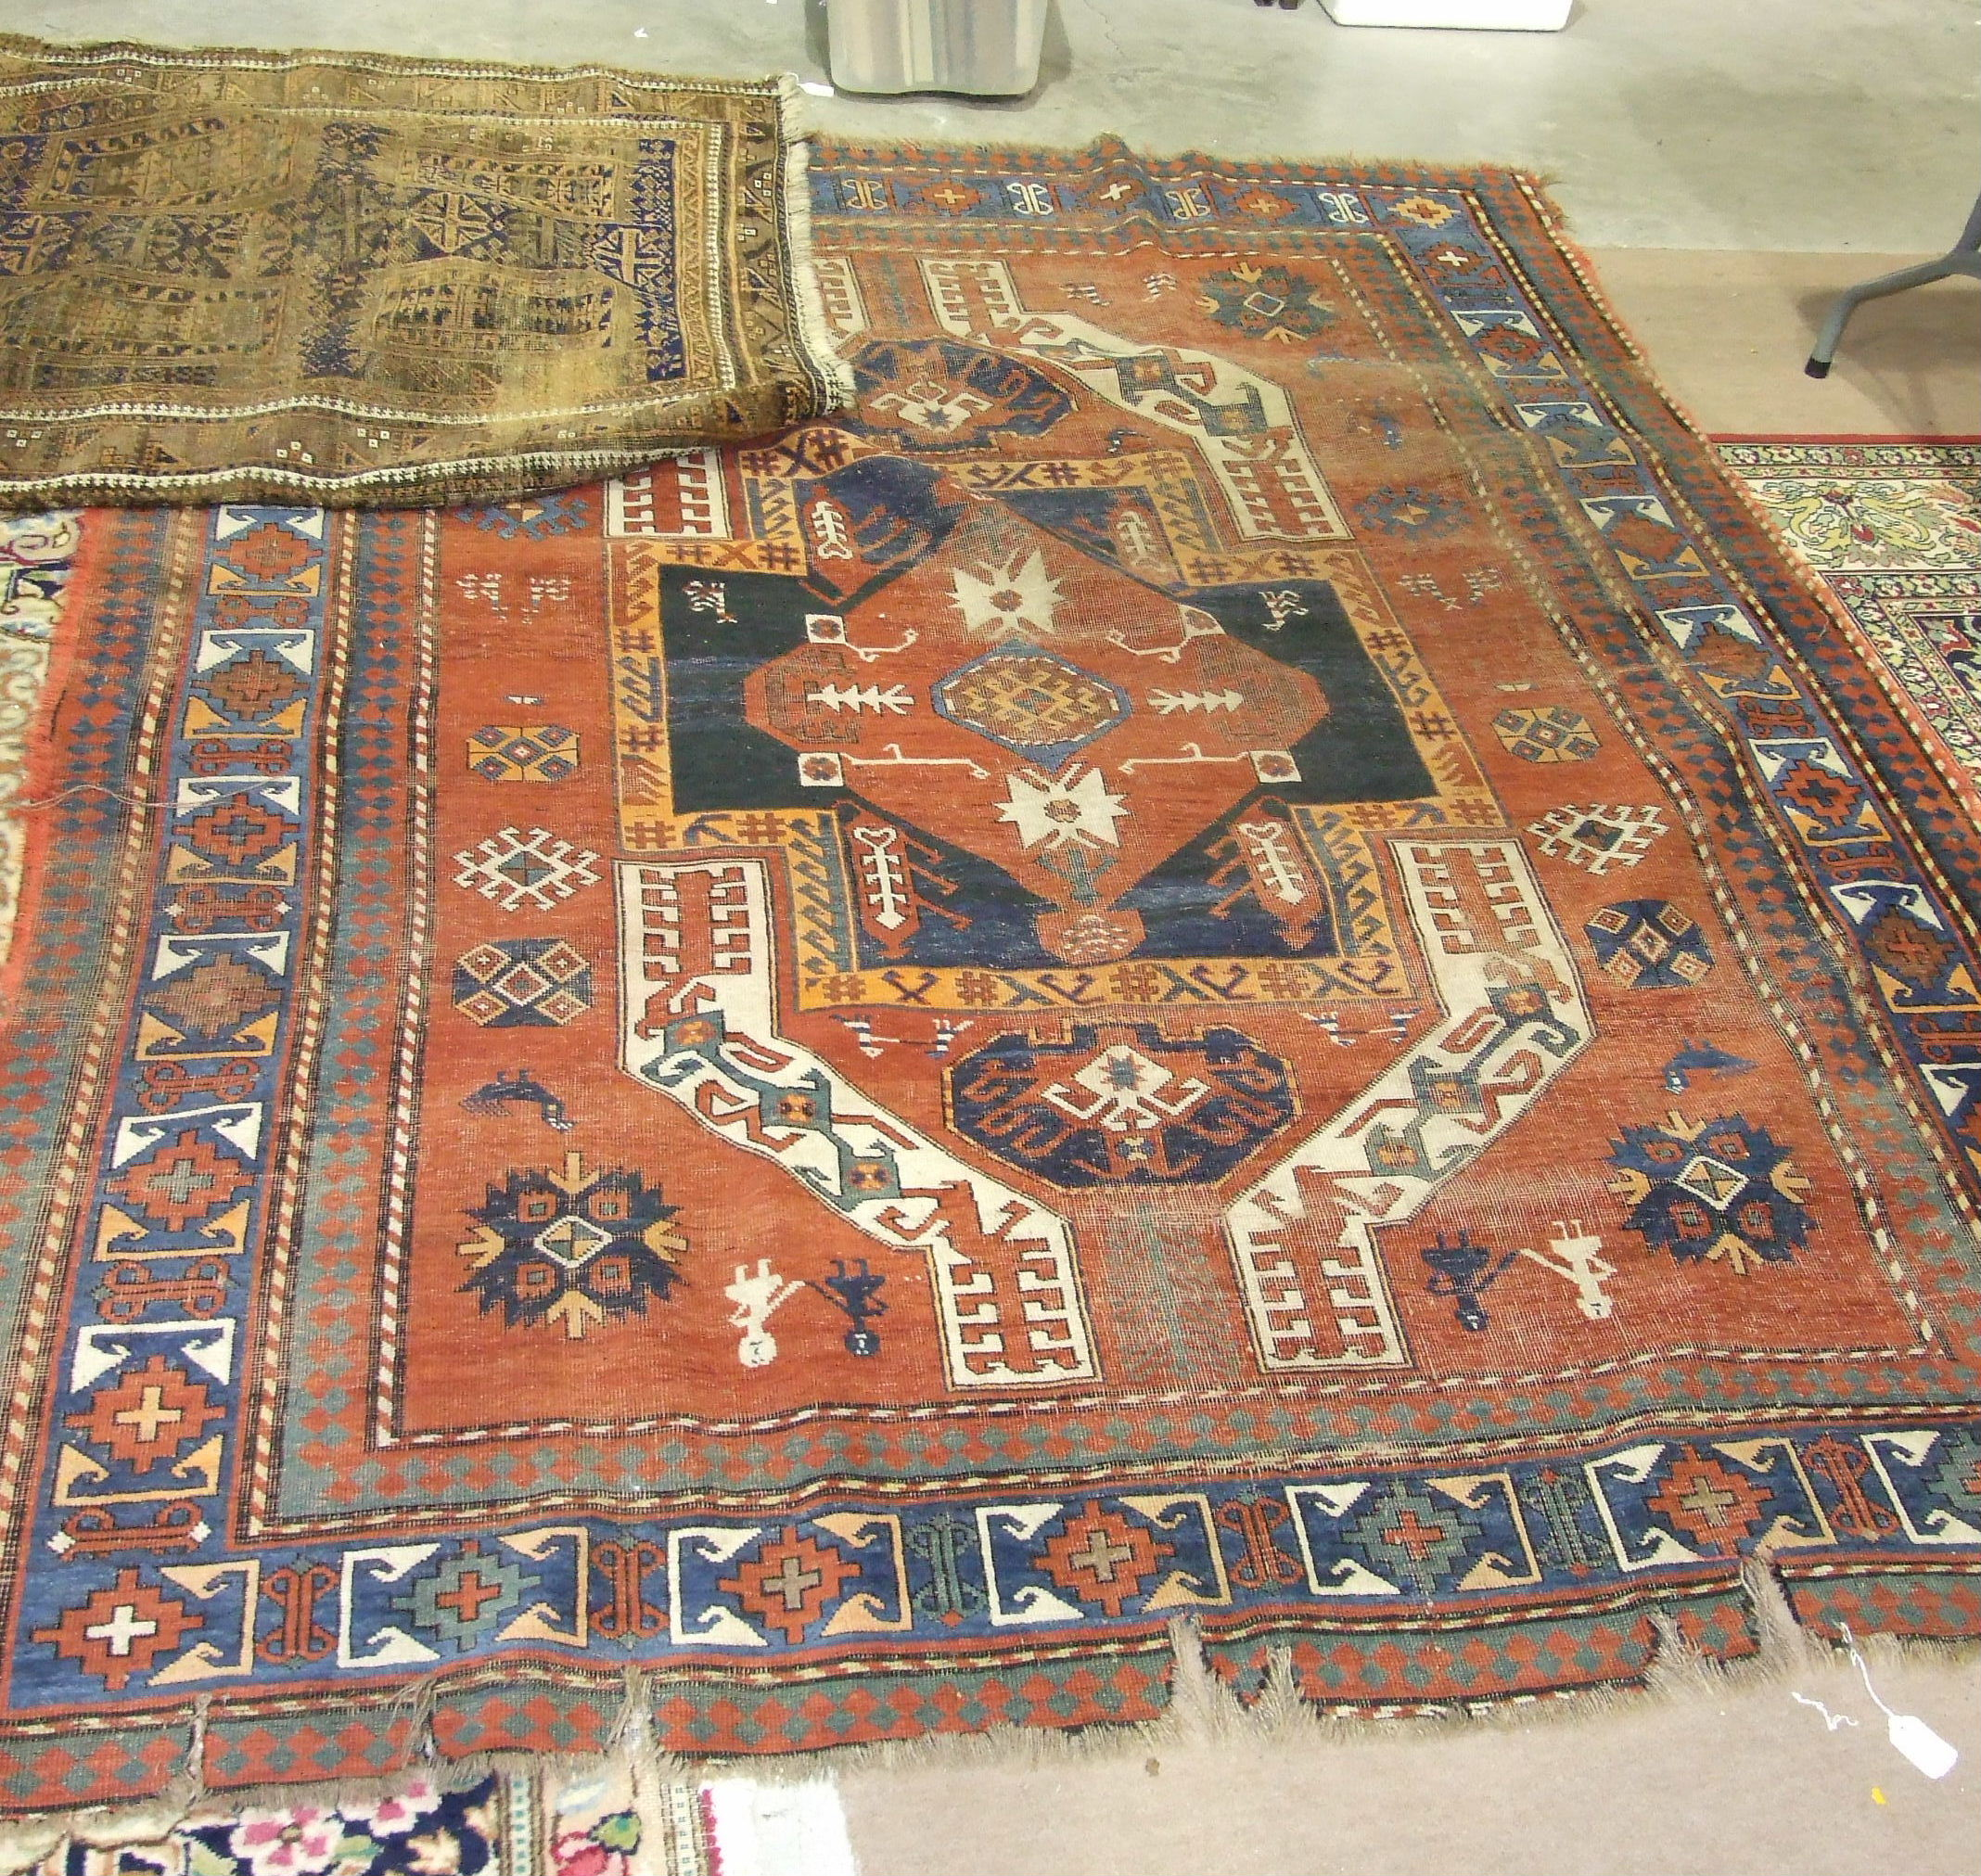 Lot 22 - An Eastern rug decorated with figures, animals and geometric shapes, 245 x 192cm and one other